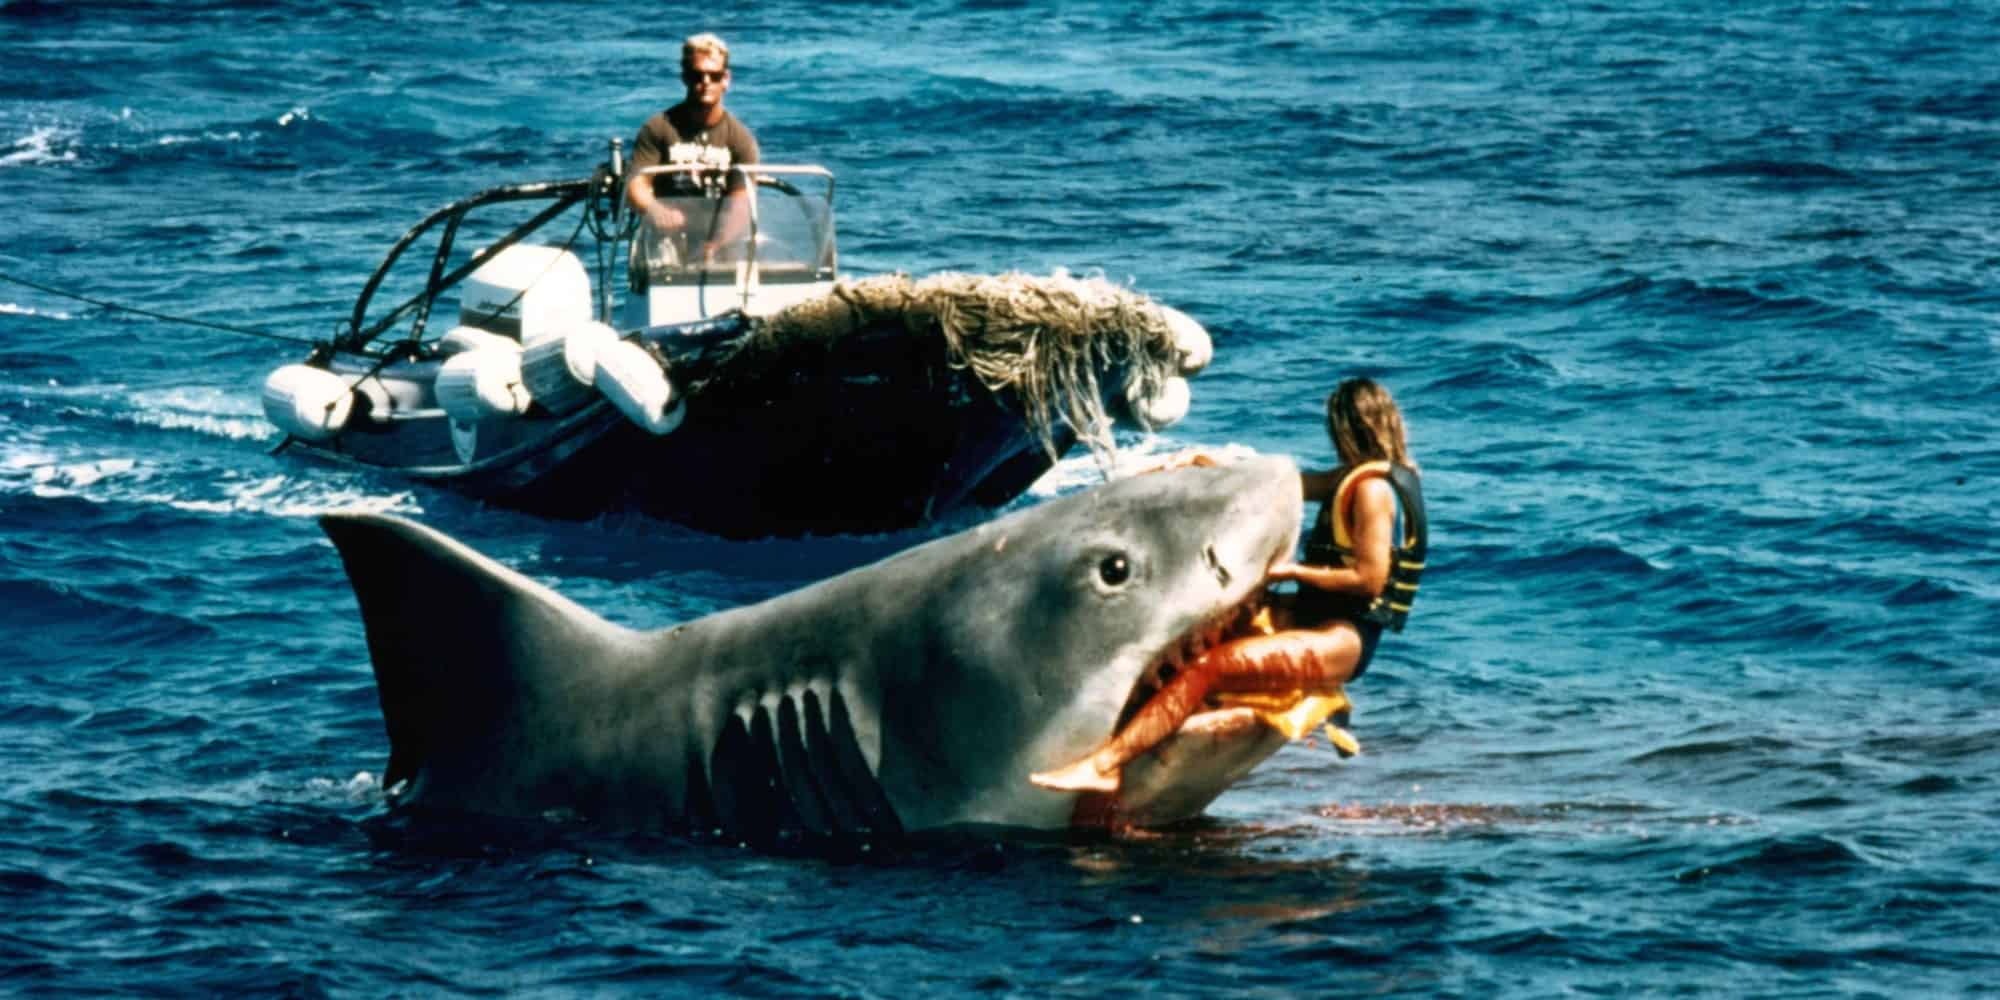 o-JAWS-MOVIE-facebook.jpg?fit=2000%2C1000&ssl=1